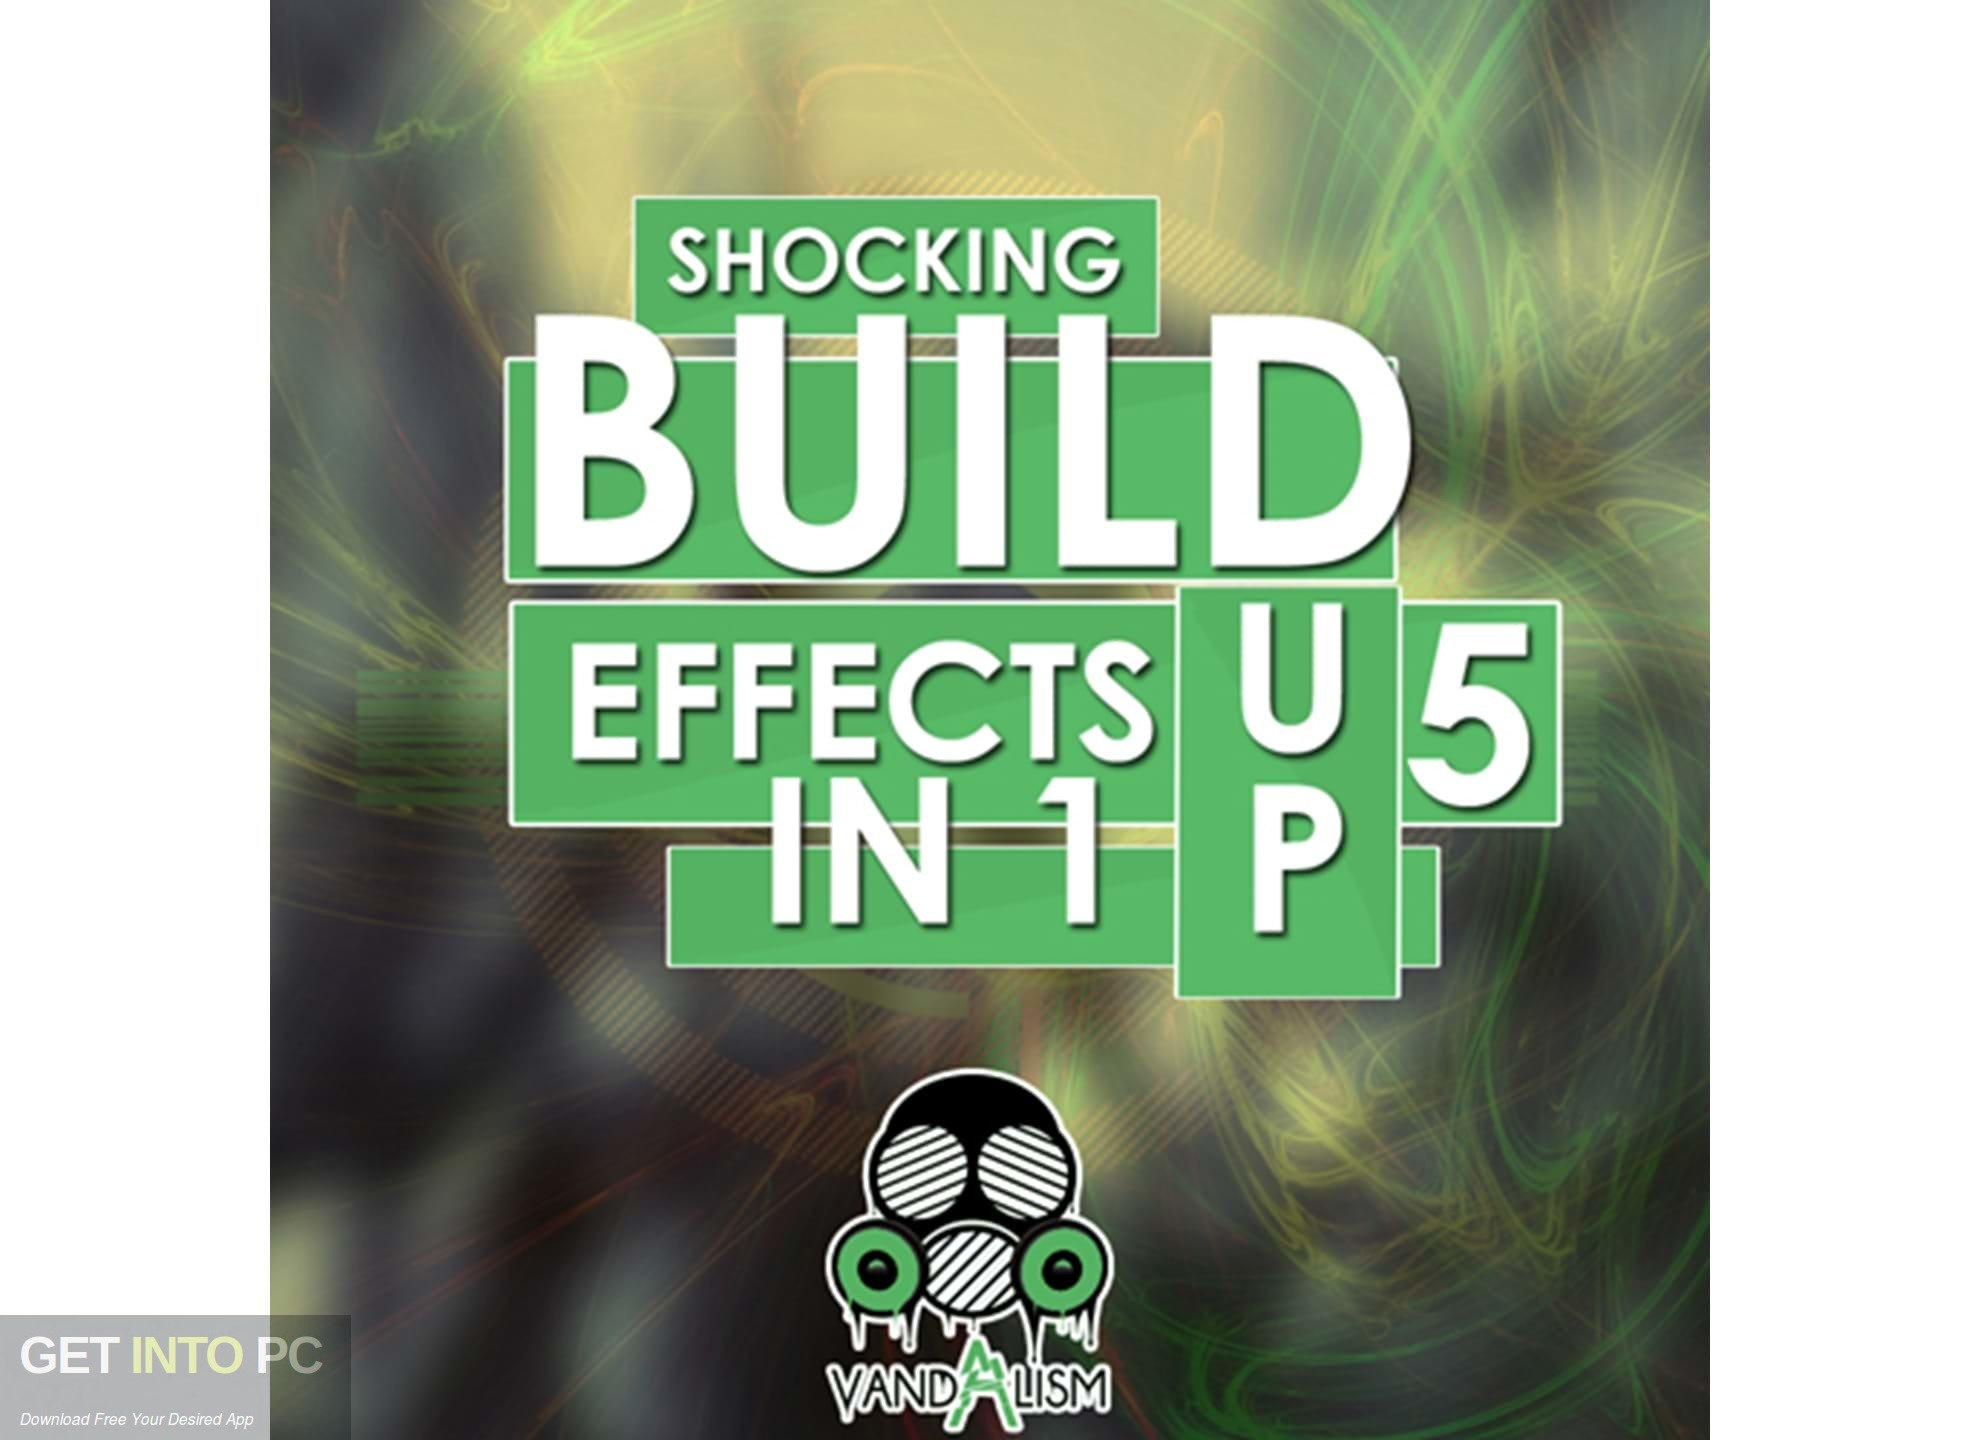 Vandalism Shocking Build Up Effects Vol.5 Free Download PcHippo